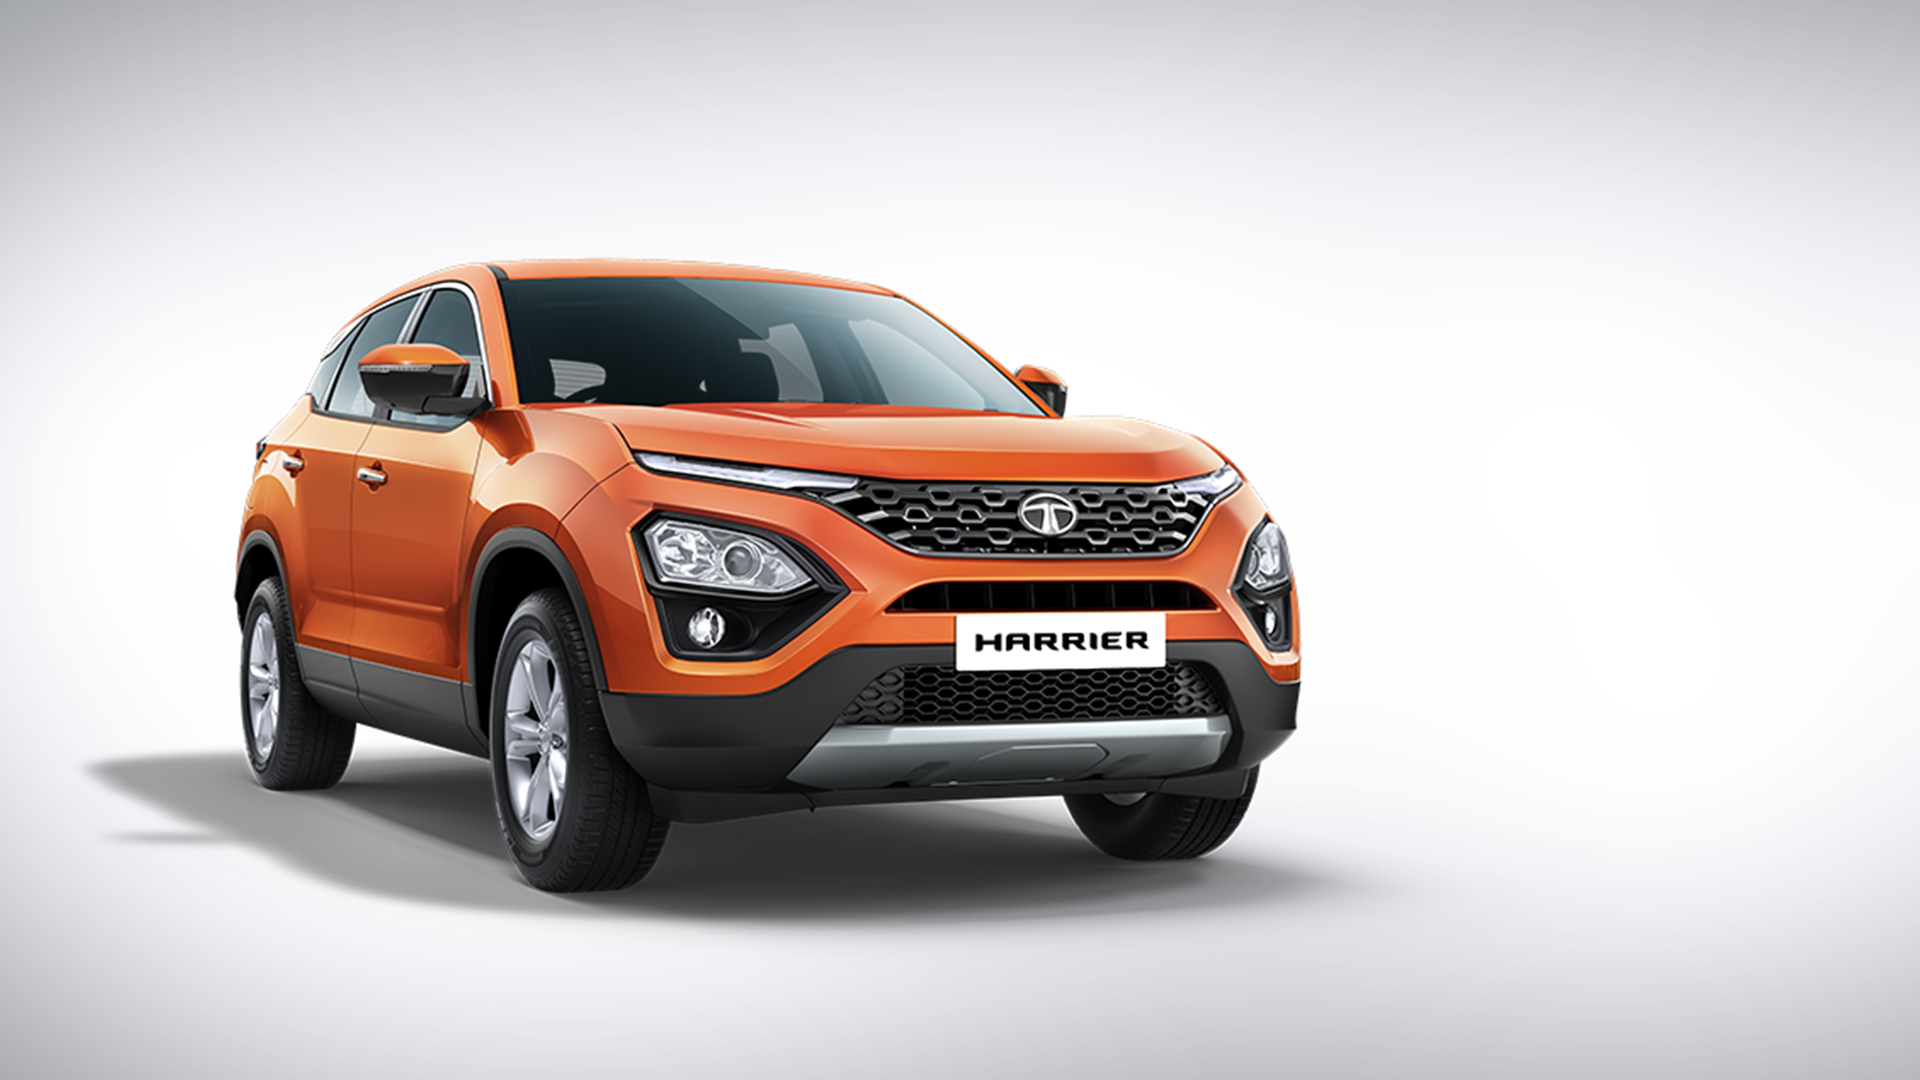 Tata Harrier Review: Everything You Need To Know Before Buying